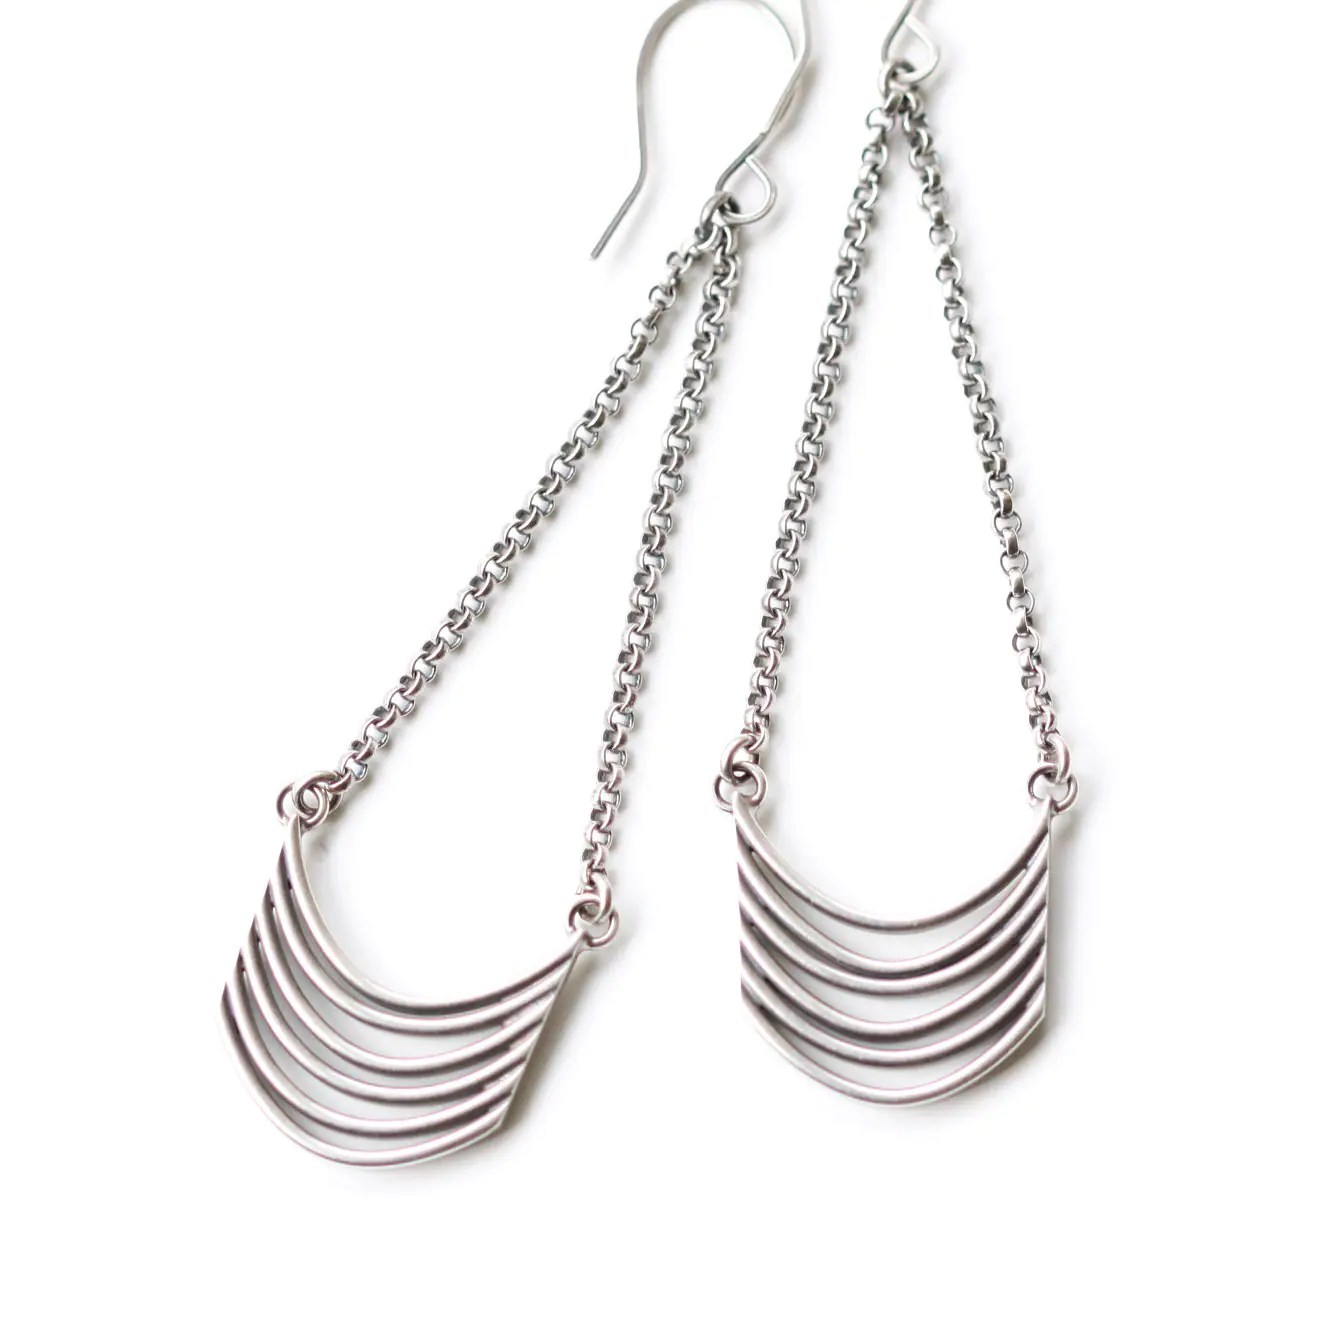 Unique And Visually Prominent Silver Earrings Stylish